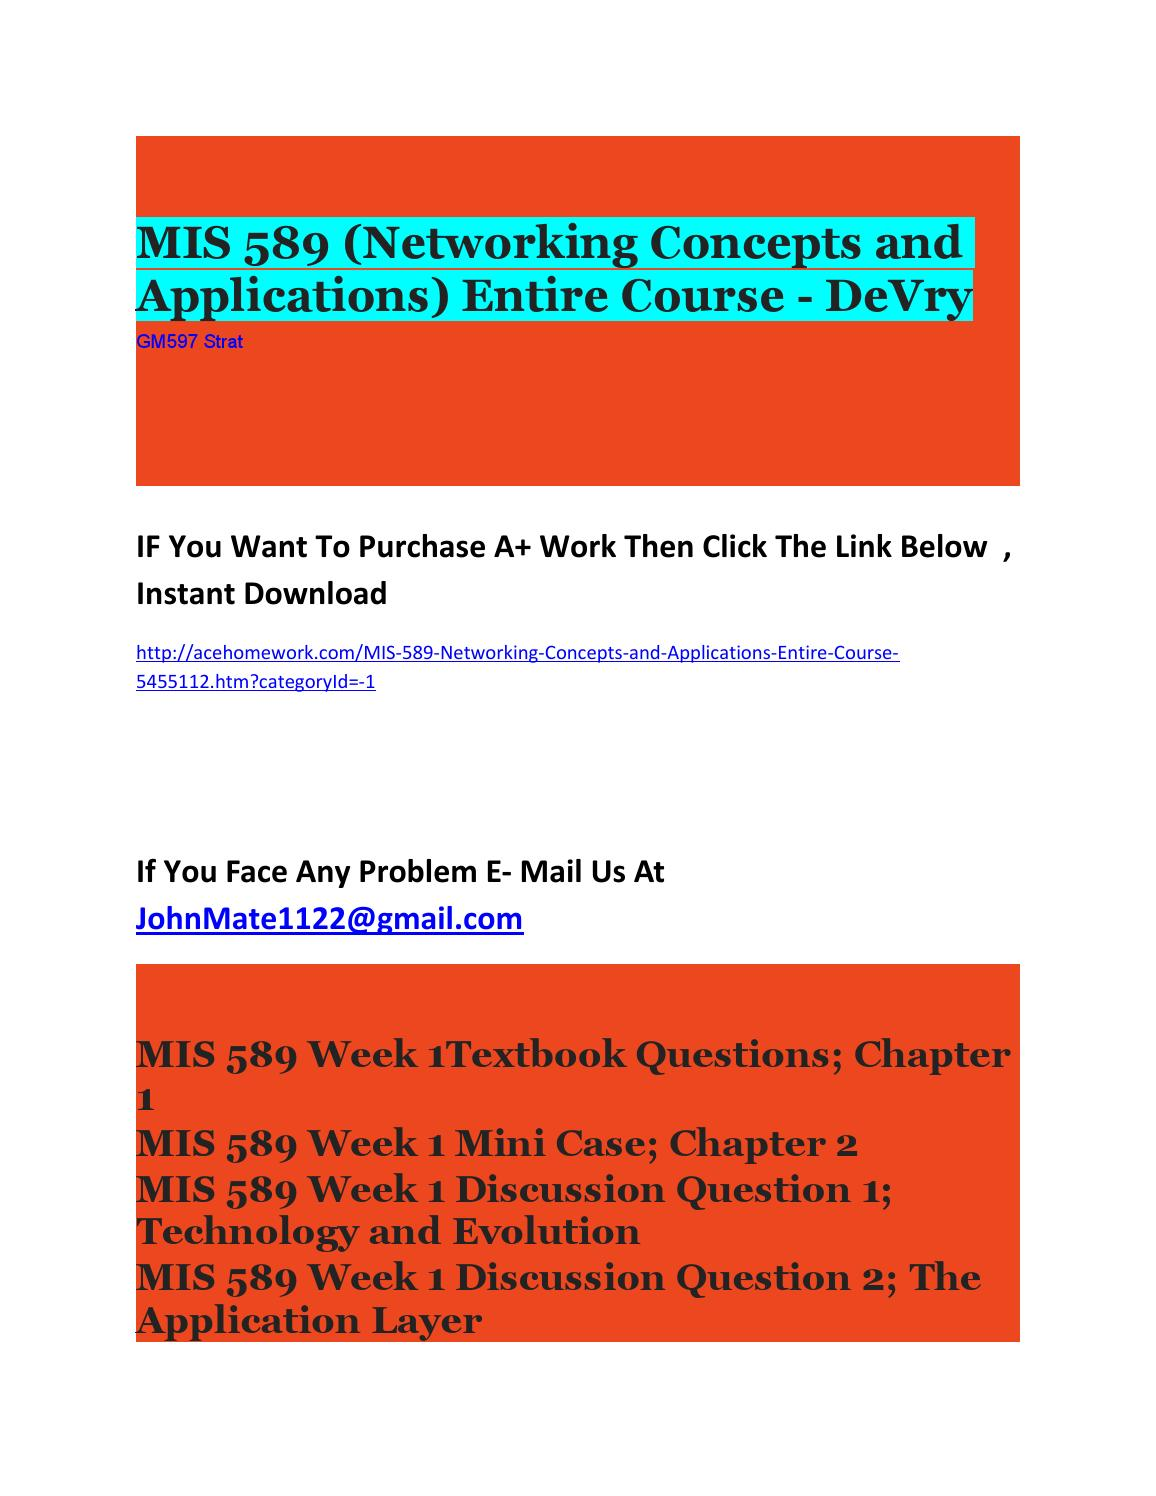 MIS 589 Networking Concepts and Application Complete Course